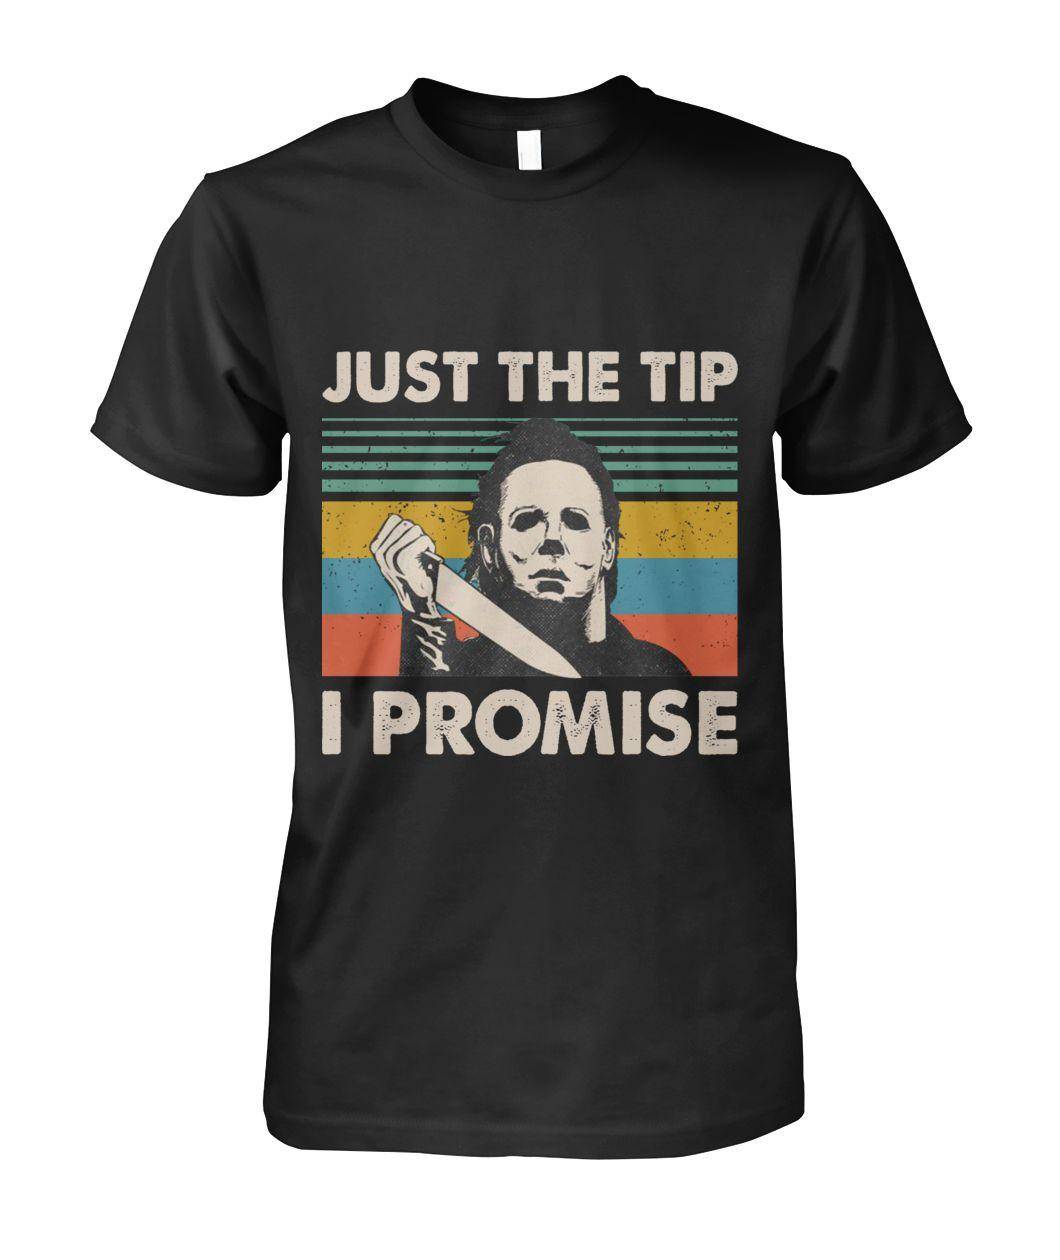 Michael Myers just the tip I promise retro shirt